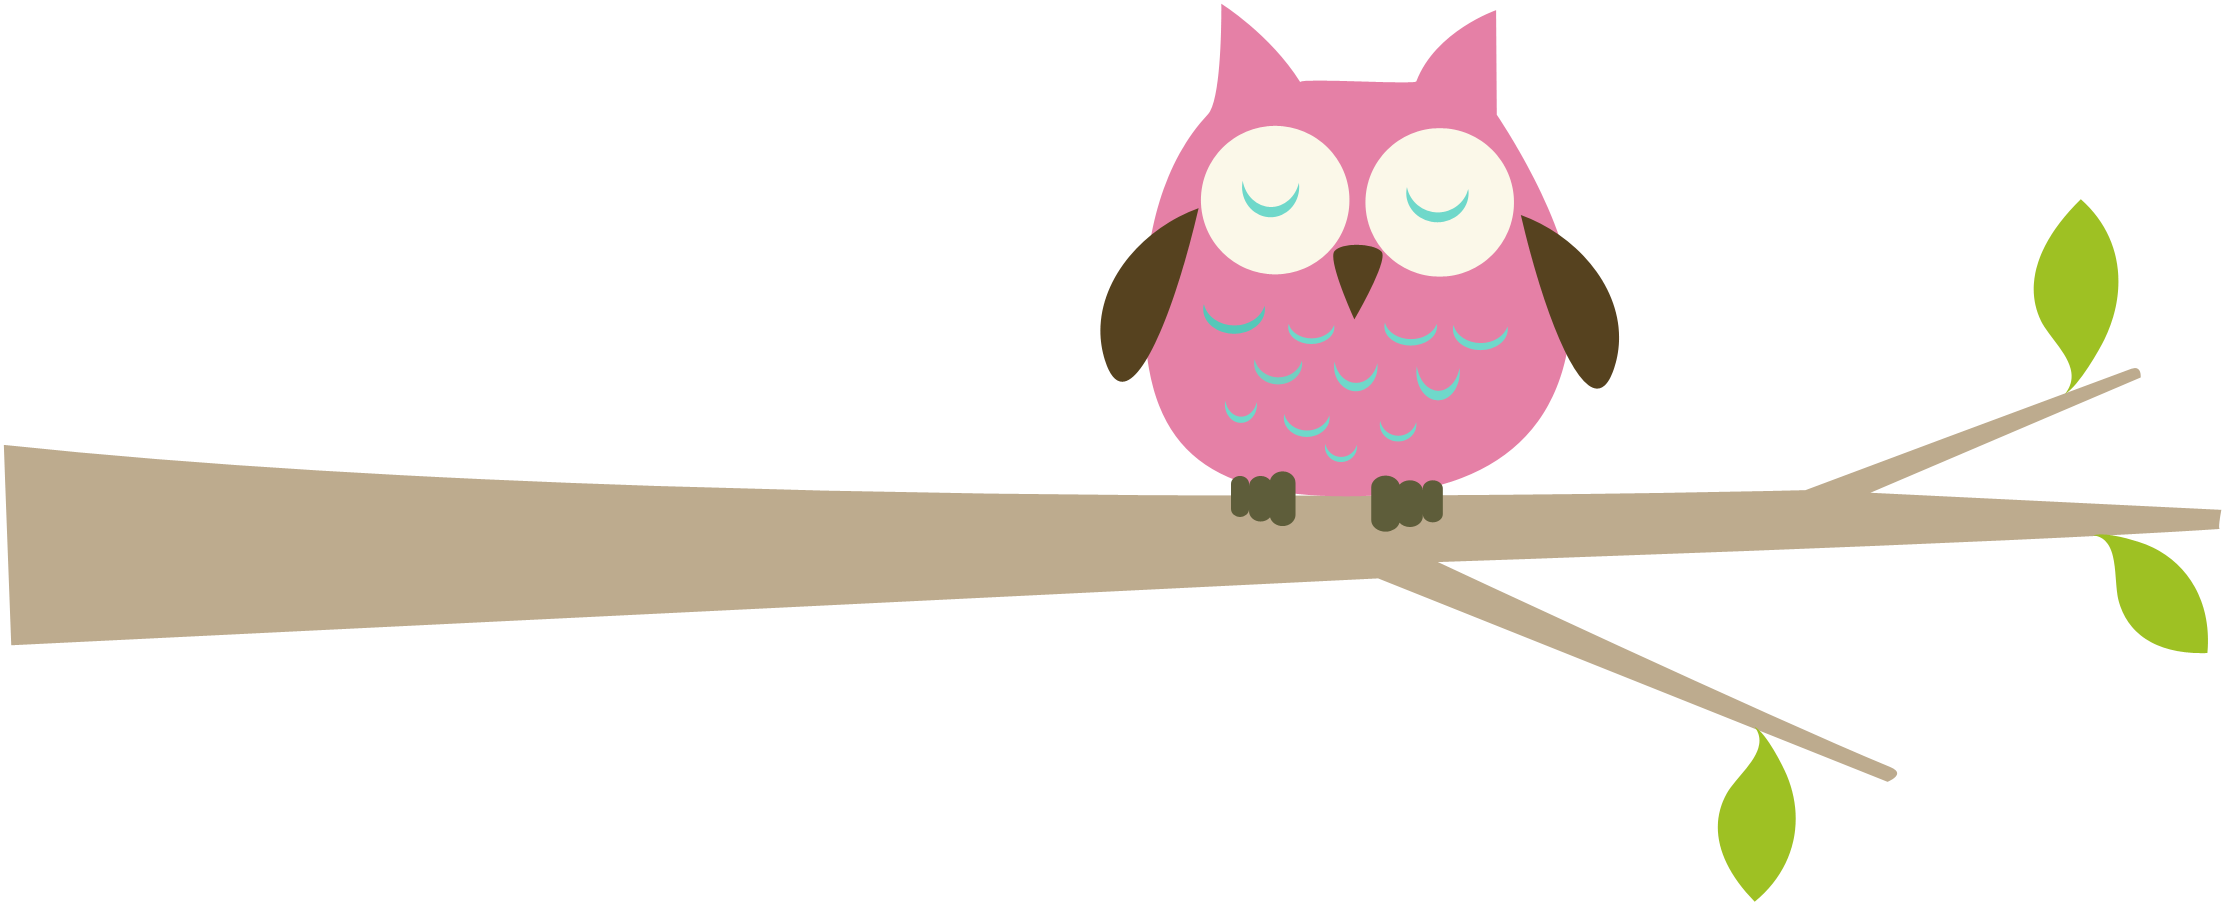 On clipart library. Owl clip art tree branch png stock